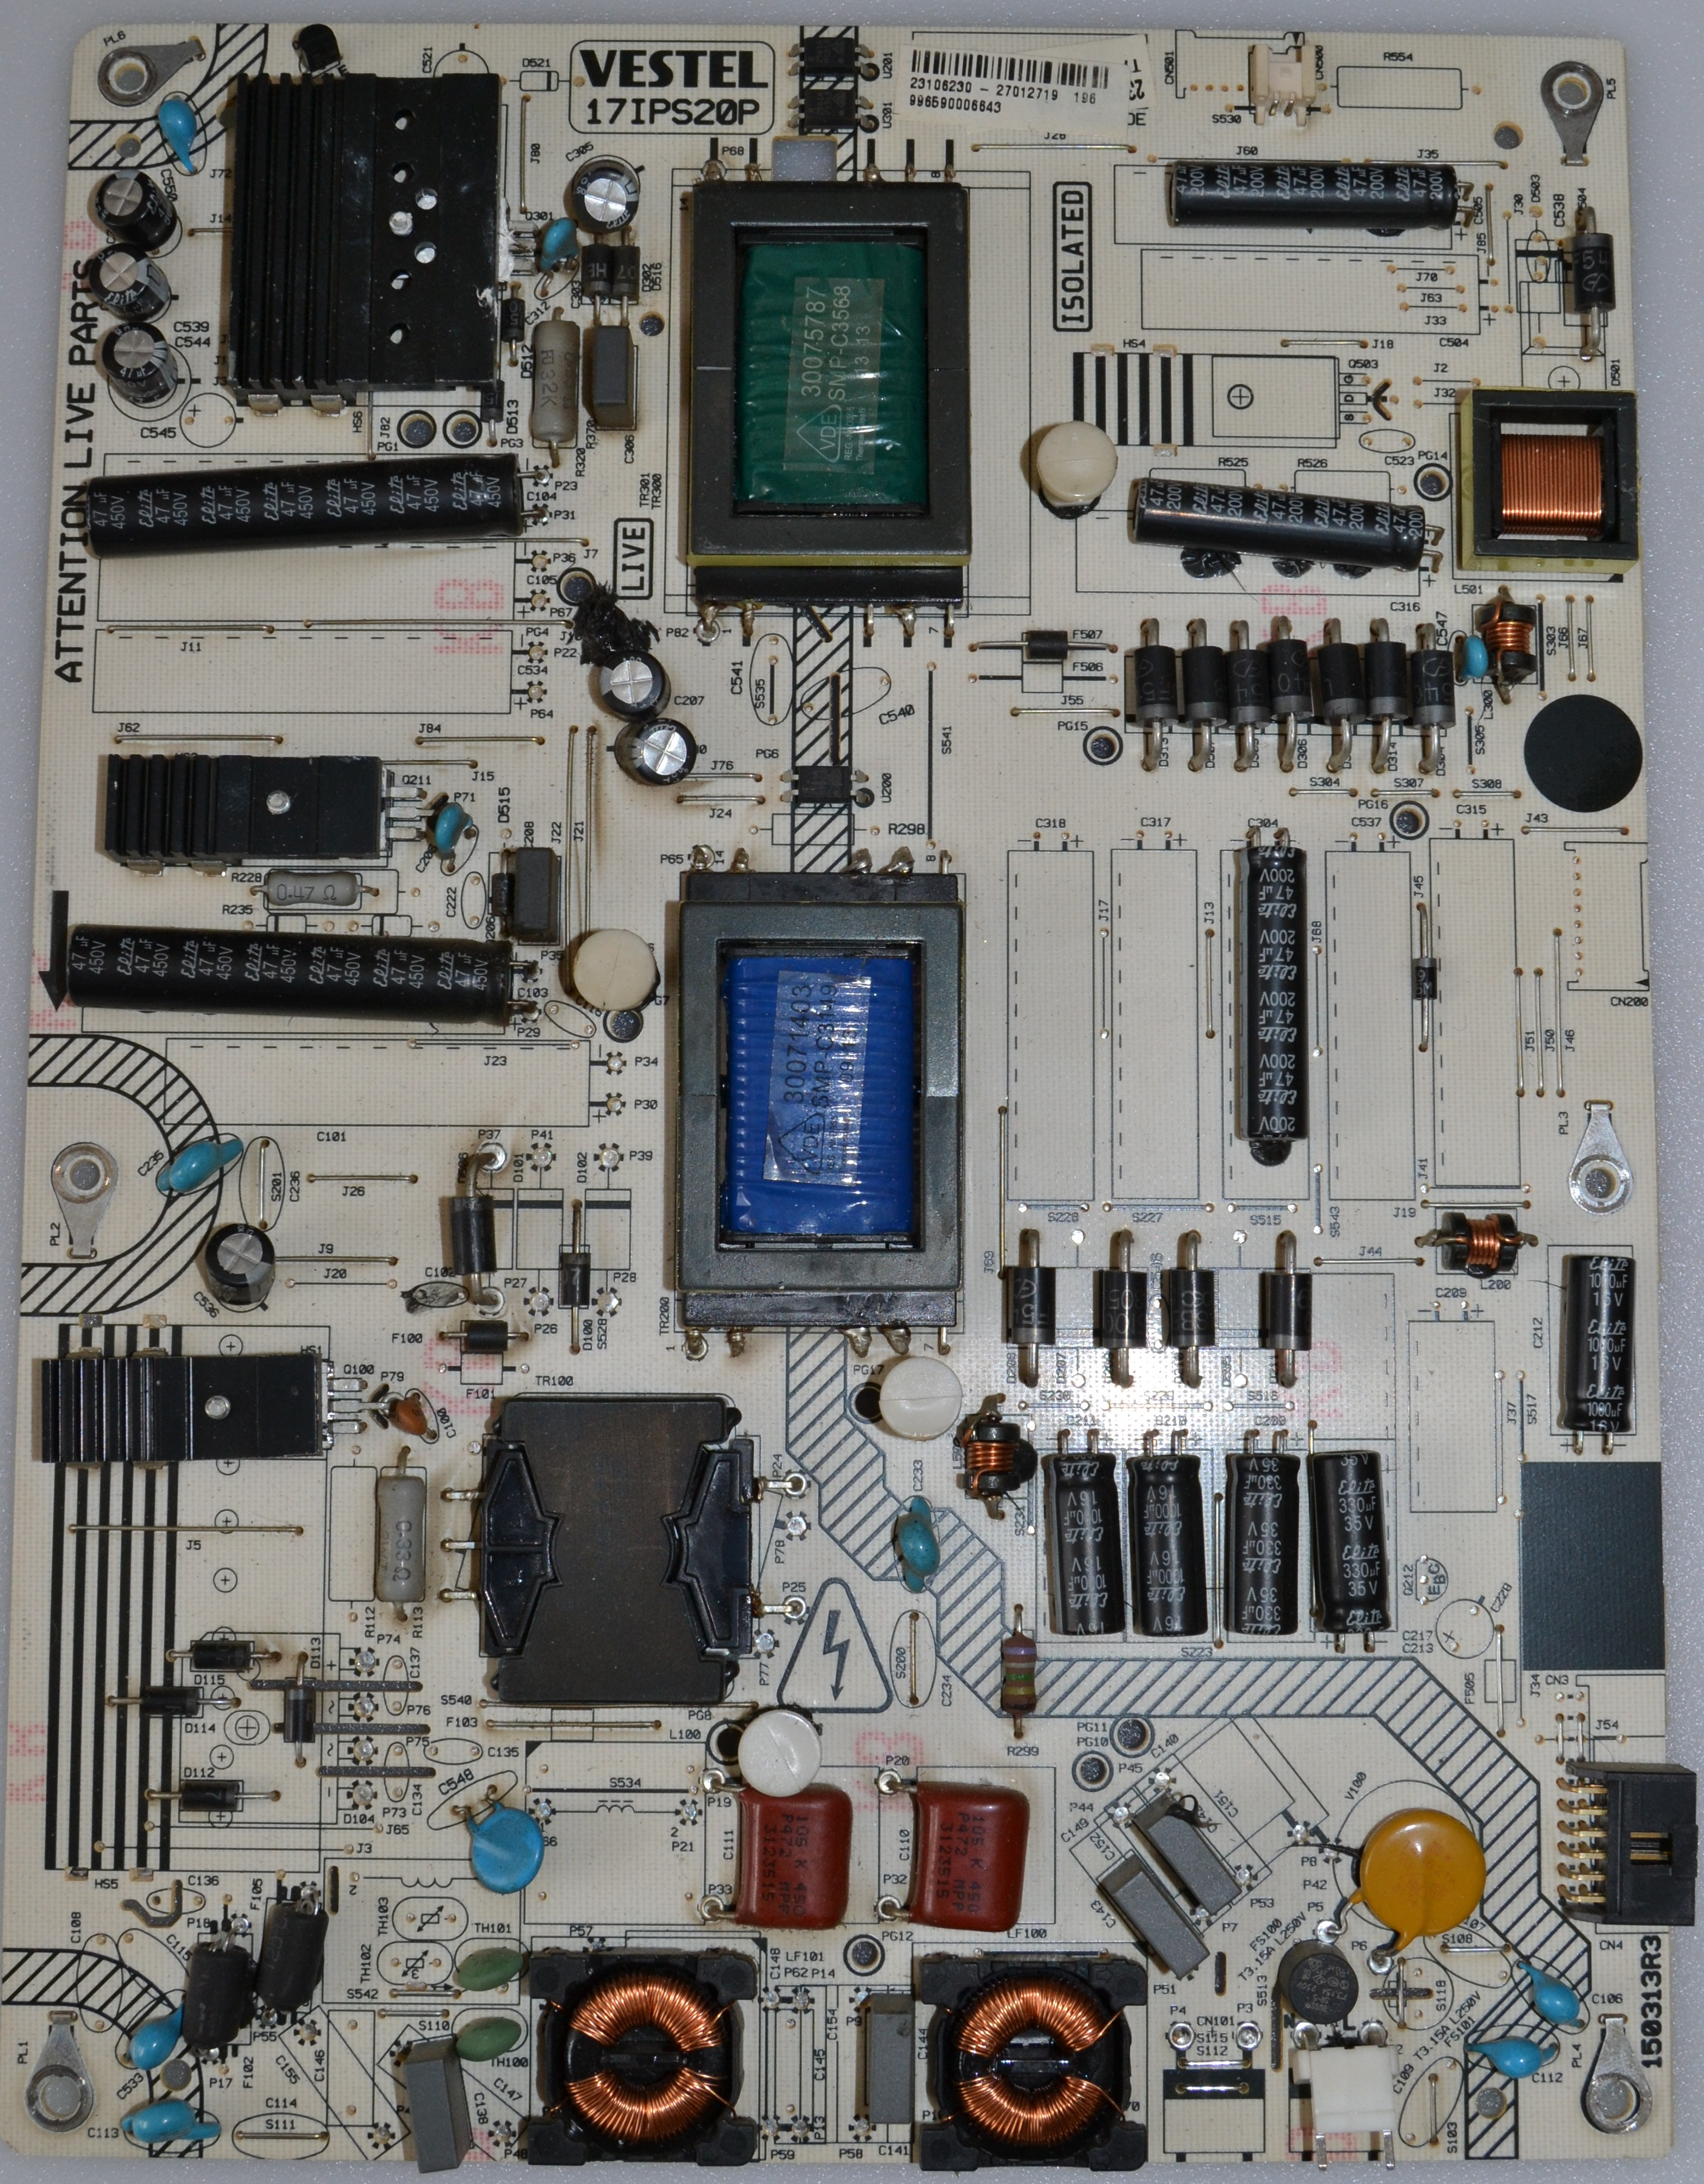 17IPS20/40INC/VES/PH/1 POWER BOARD ,17IPS20P, for 40 inc DISPLAY ,23106230,27012719,996990006643,15031R3,